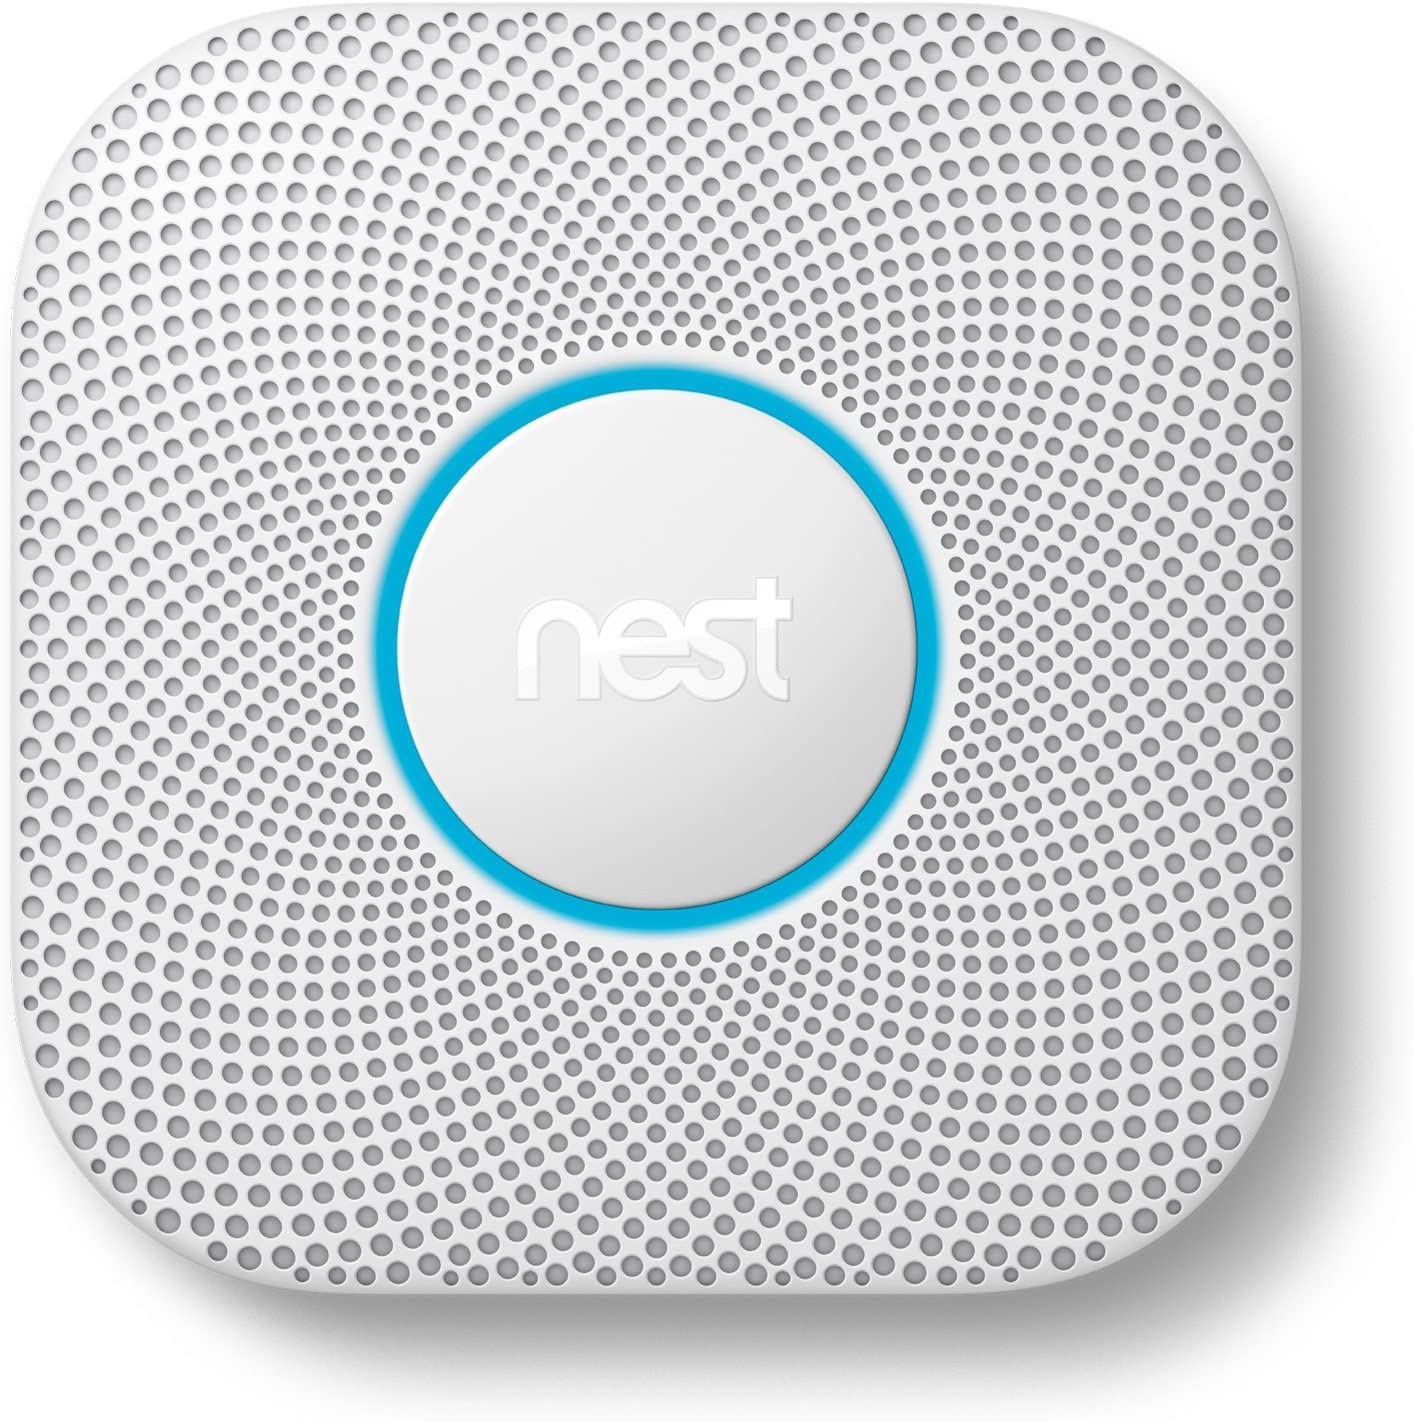 Google Nest Protect Smoke + Carbon Monoxide Alarm, S3000BWES, 2nd ...